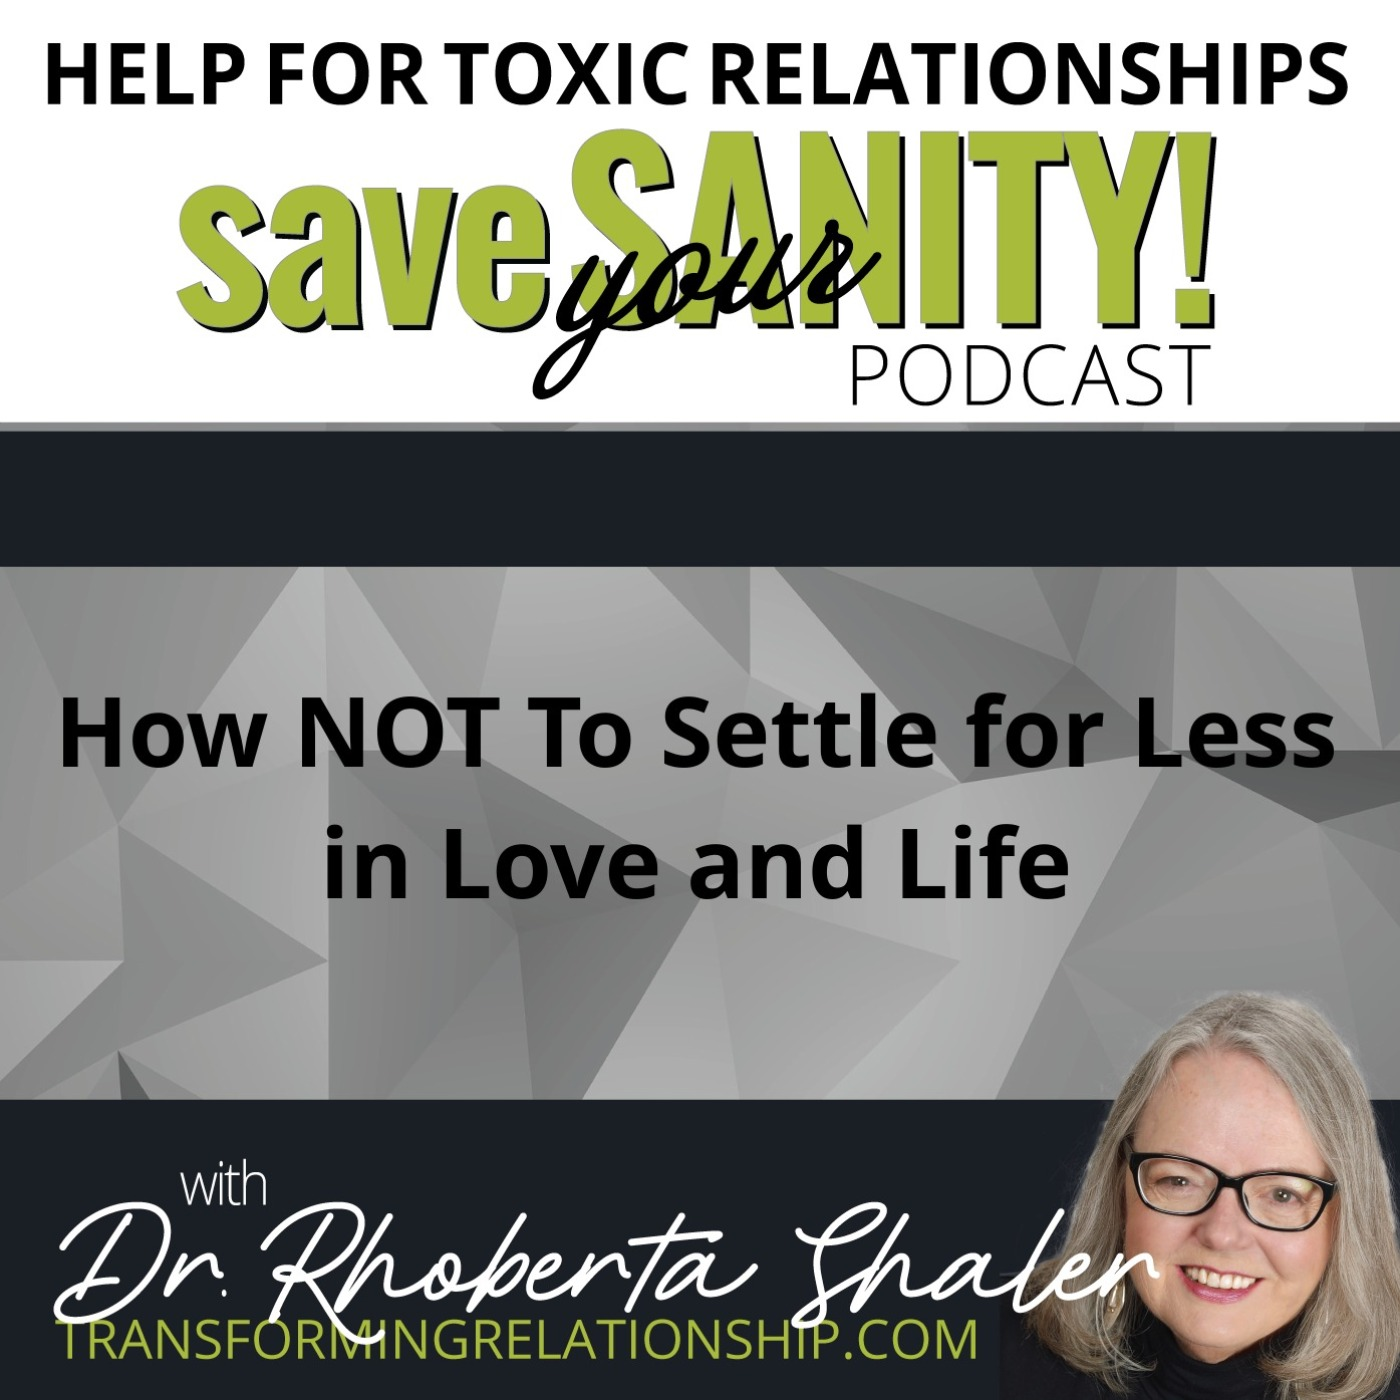 How Not To Settle For Less In Life And Love - Dr. Rhoberta Shaler